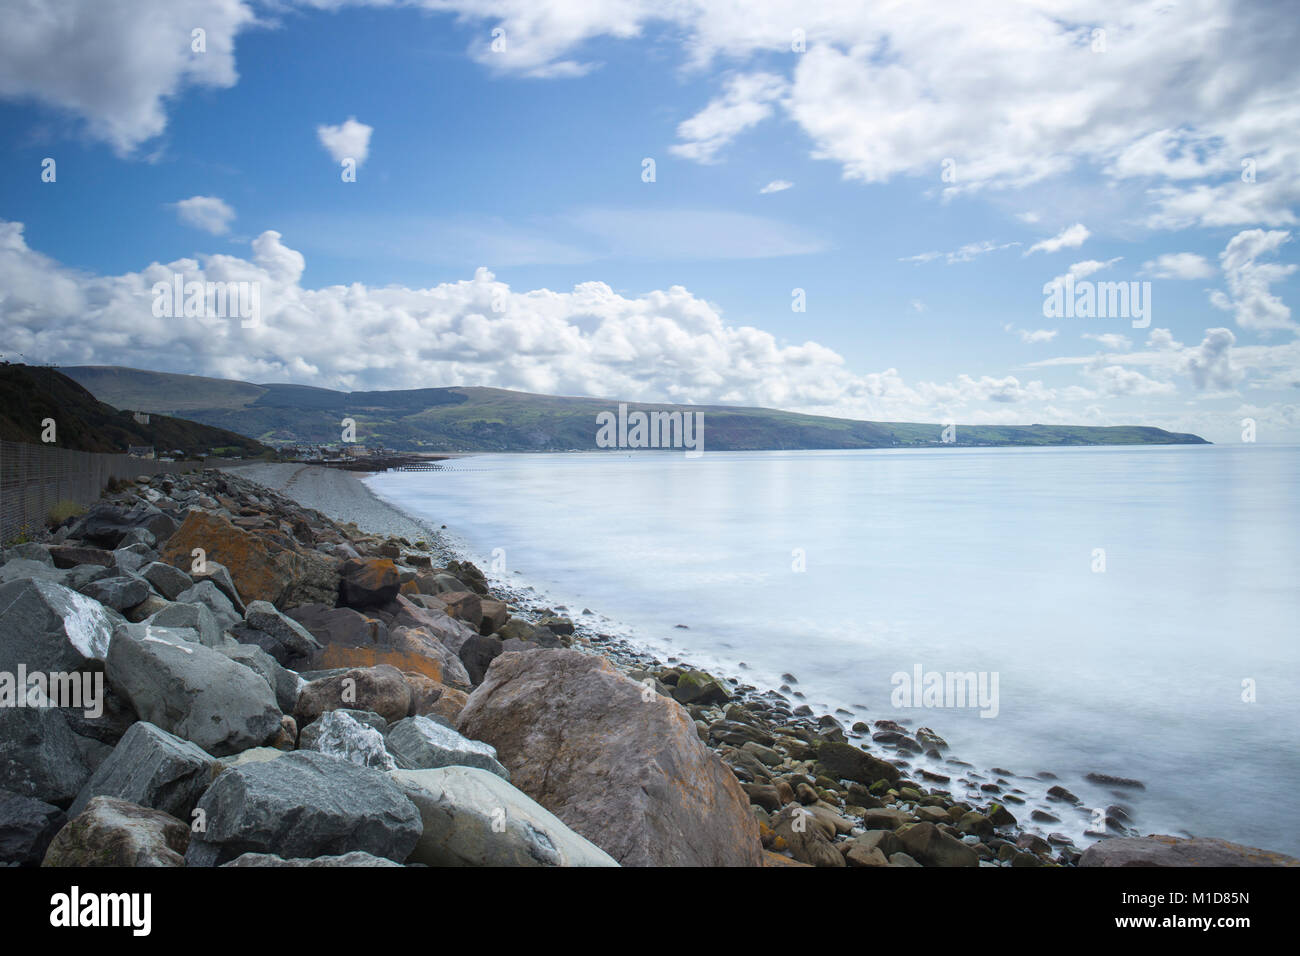 Cardigan Bay as seen from Llanaber with Barmouth in distance, Gwynedd North Wales UK - Stock Image